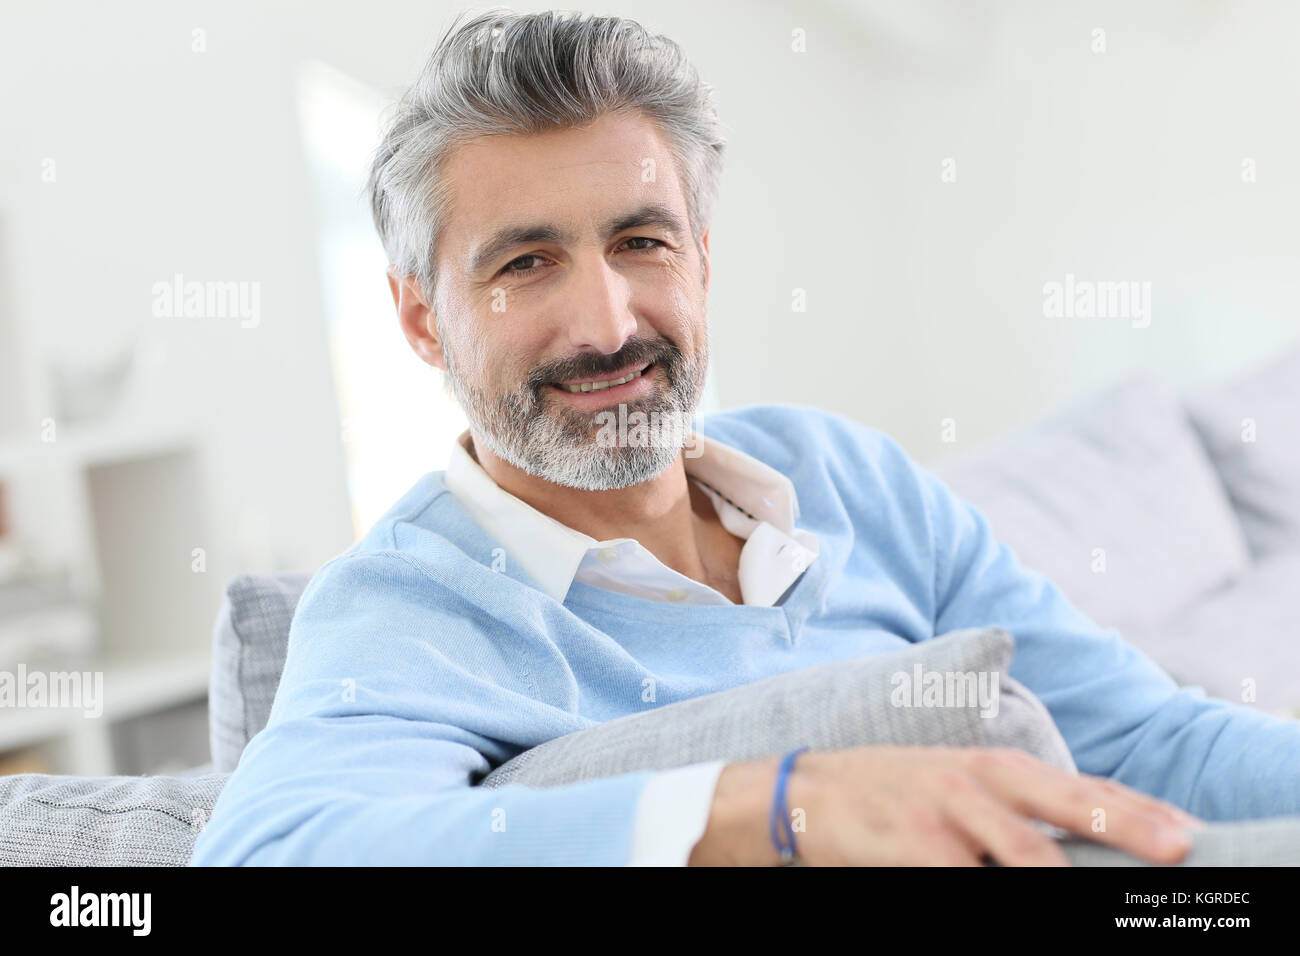 45-year-old man relaxing in sofa at home - Stock Image